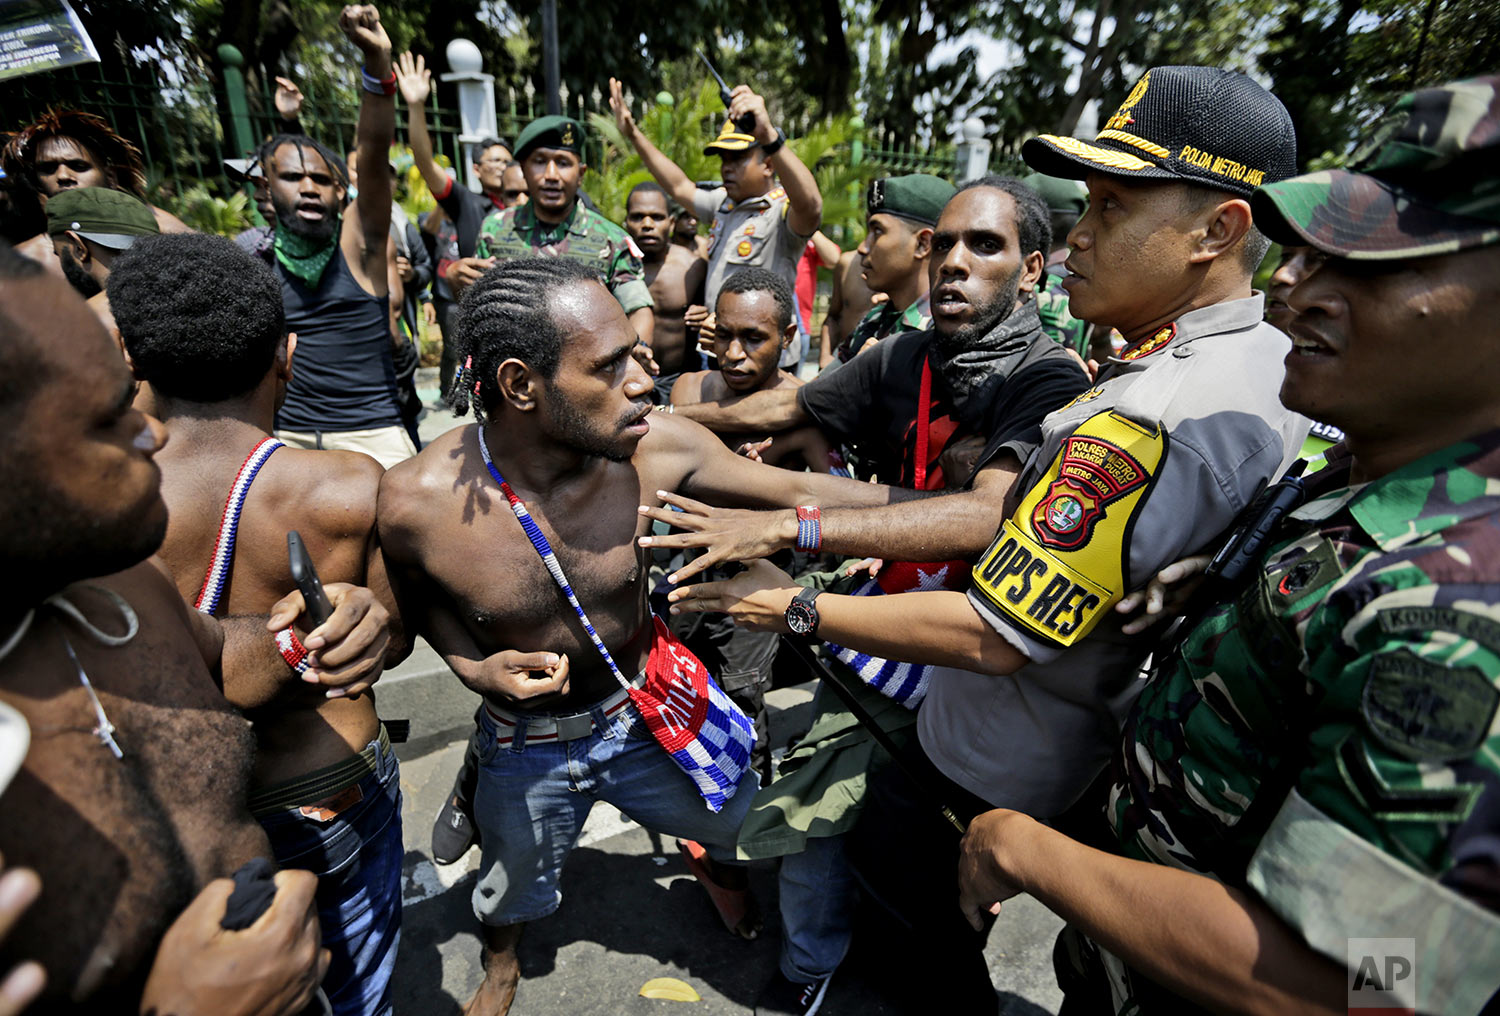 Papuan activists scuffle with police and soldiers during a rally near the presidential palace in Jakarta, Indonesia, Thursday, Aug. 22, 2019. (AP Photo/Dita Alangkara)